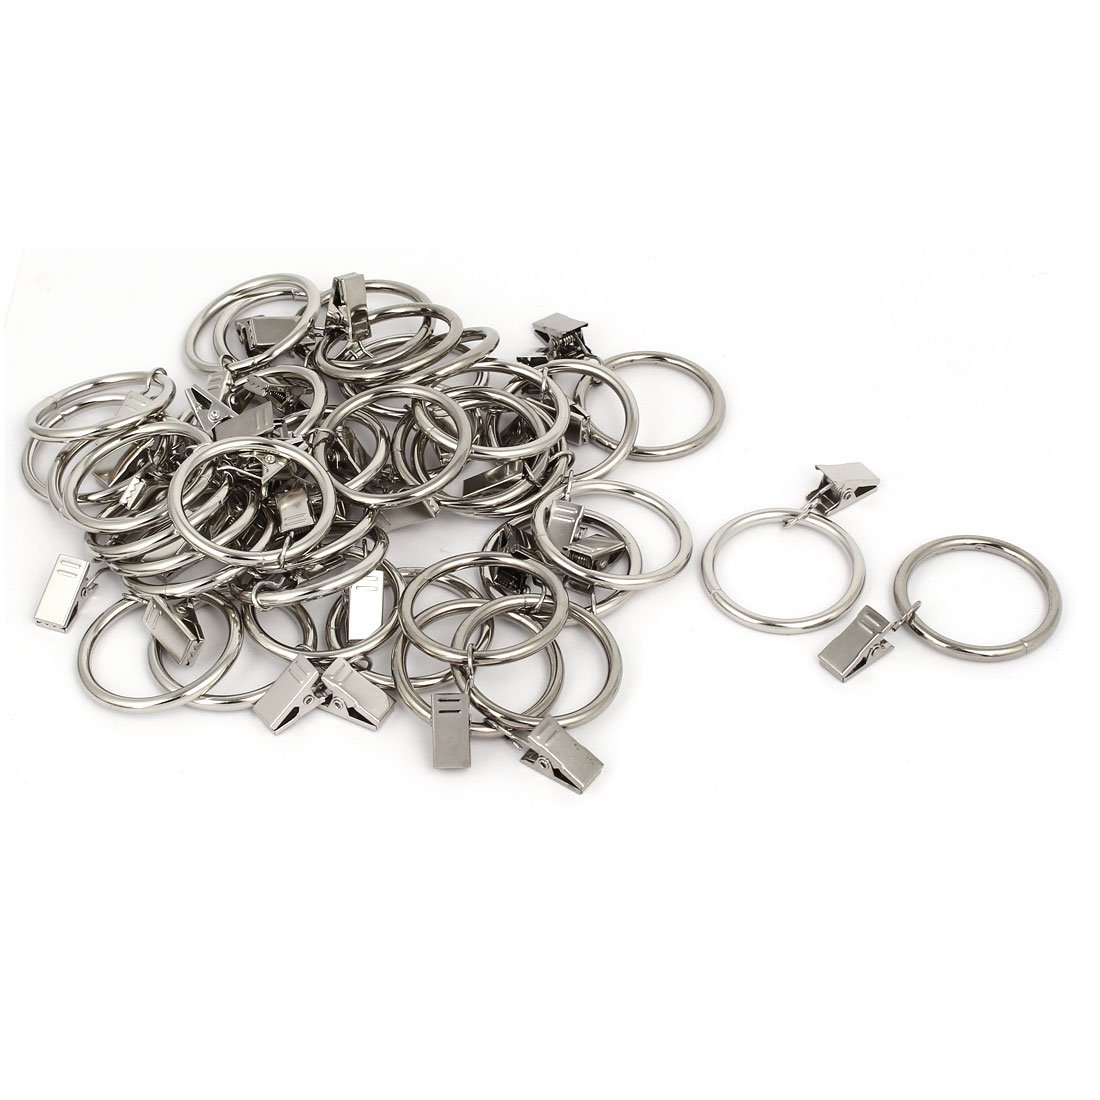 uxcell 36mm Inner Dia Stainless Steel Curtain Drapery Hanging Rings Clips 40 Sets a16123100ux0854